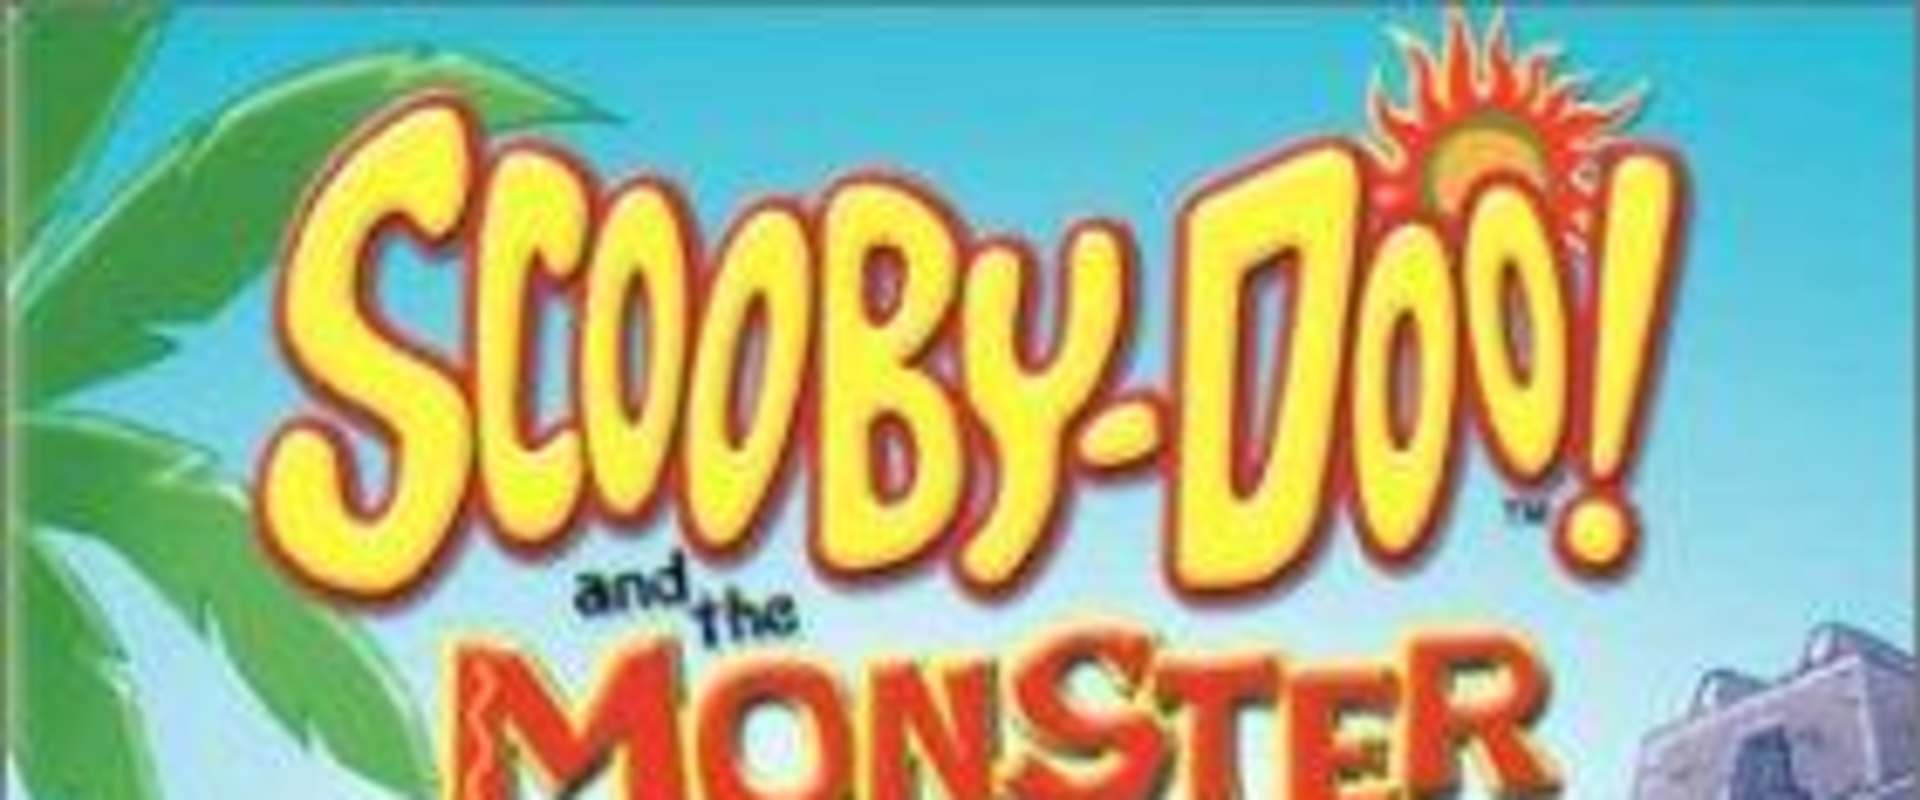 Scooby-Doo and the Monster of Mexico background 2